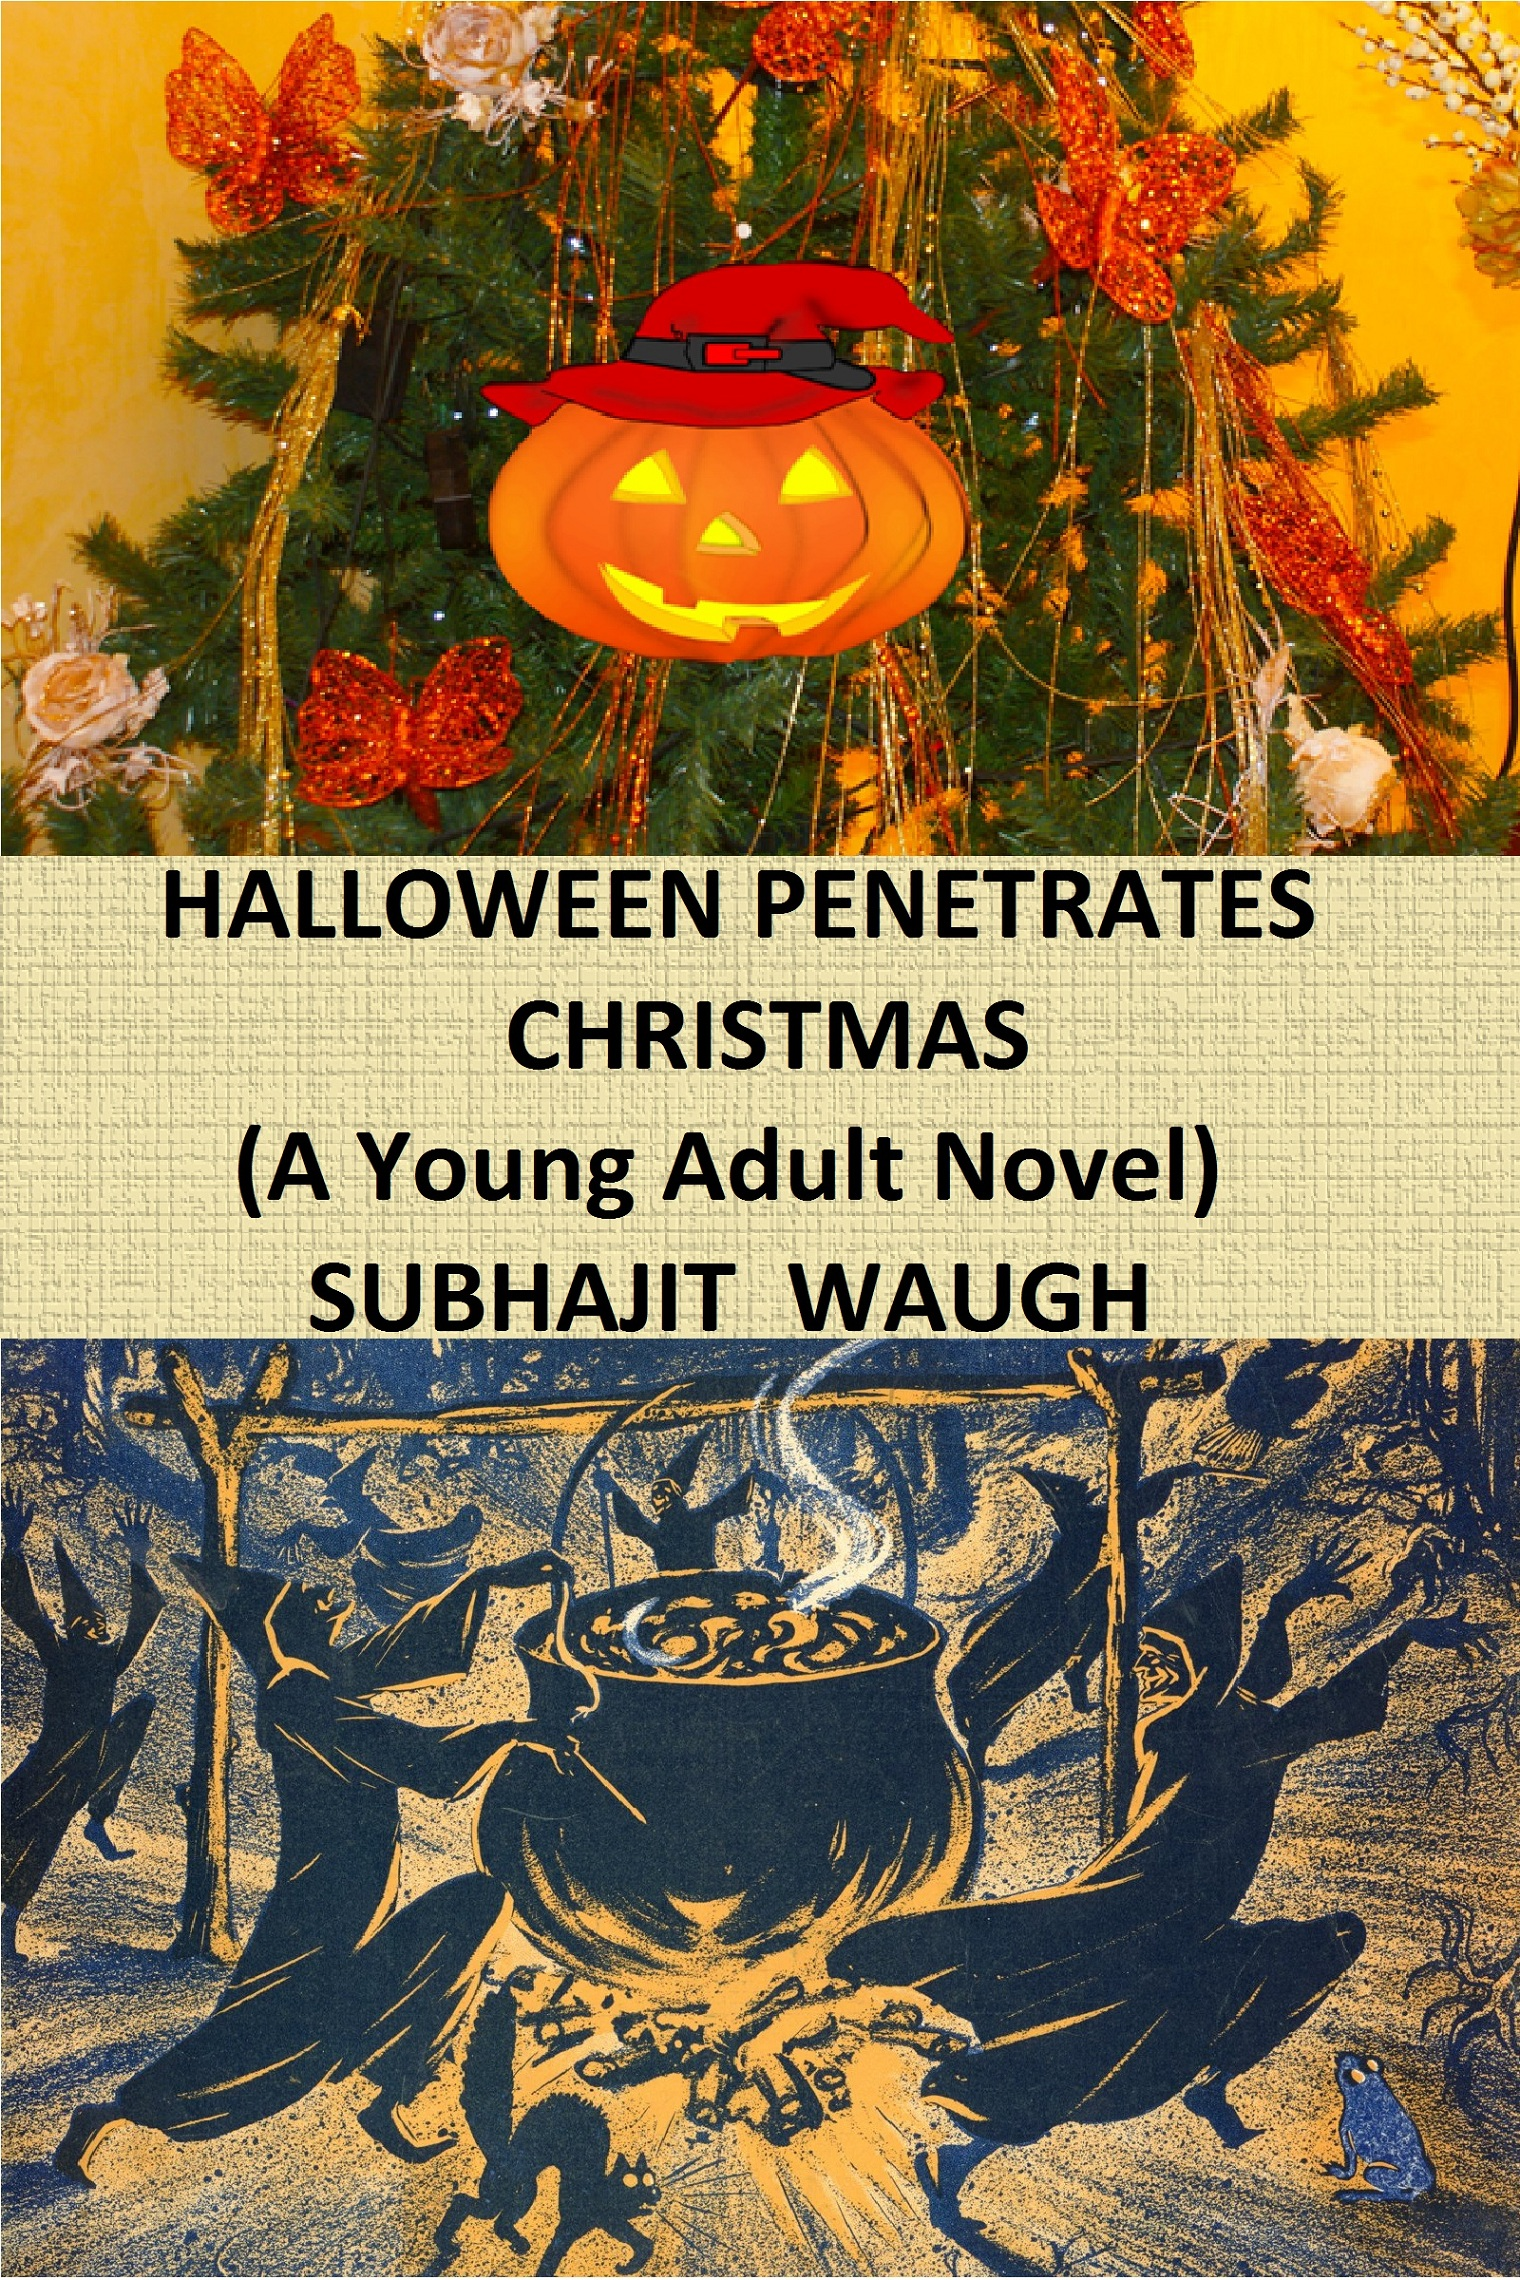 Halloween Penetrates Christmas-30 pct. sample